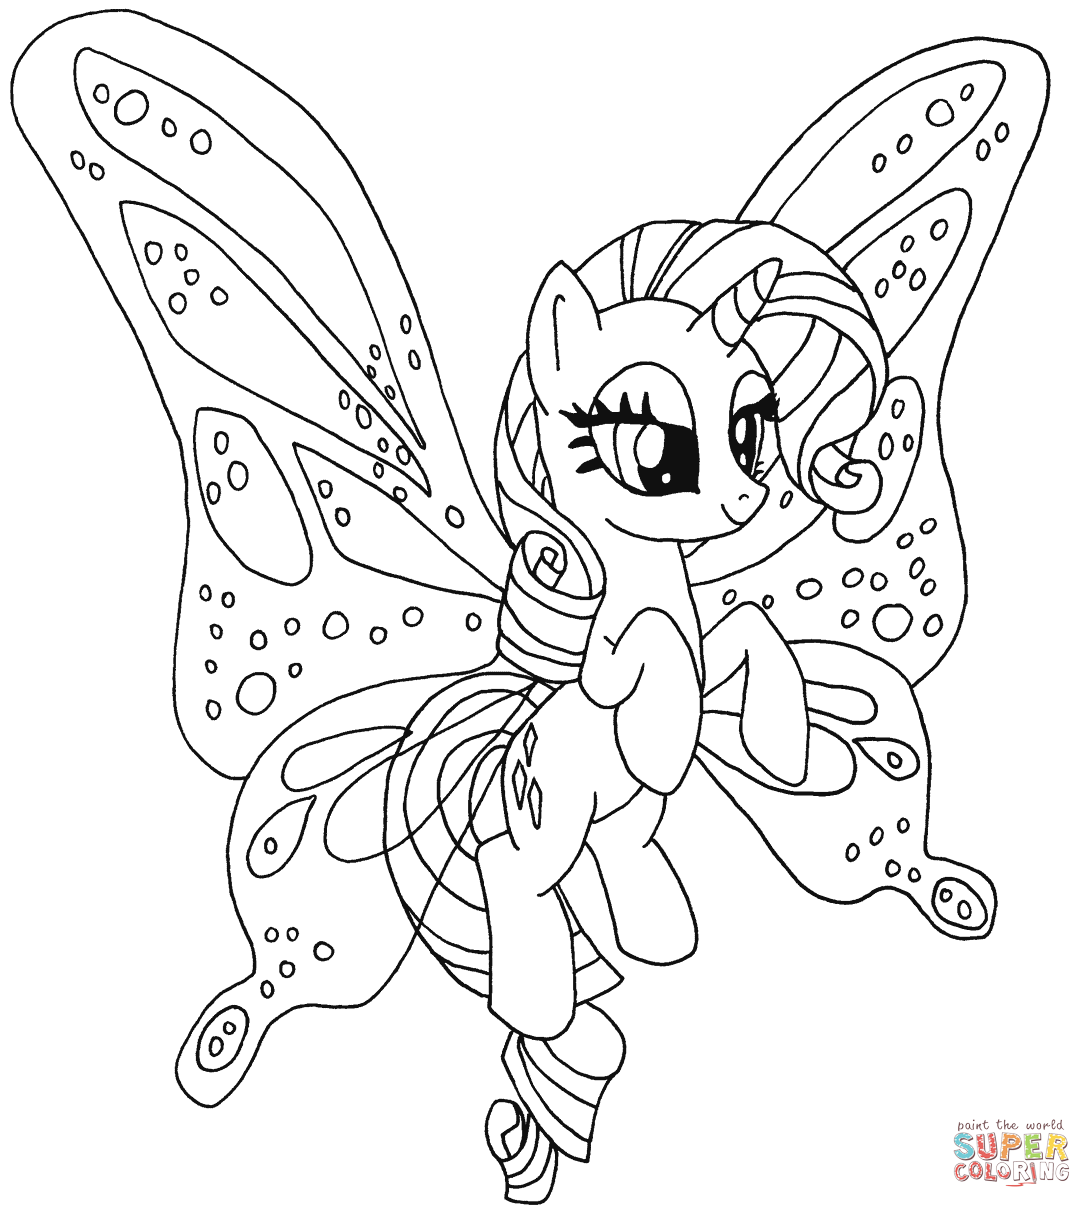 Mobile shimmer and shine coloring games coloring pages ausmalbilder - Rarity Pony From My Little Pony Rainbow Dash From My Little Pony Coloring Page